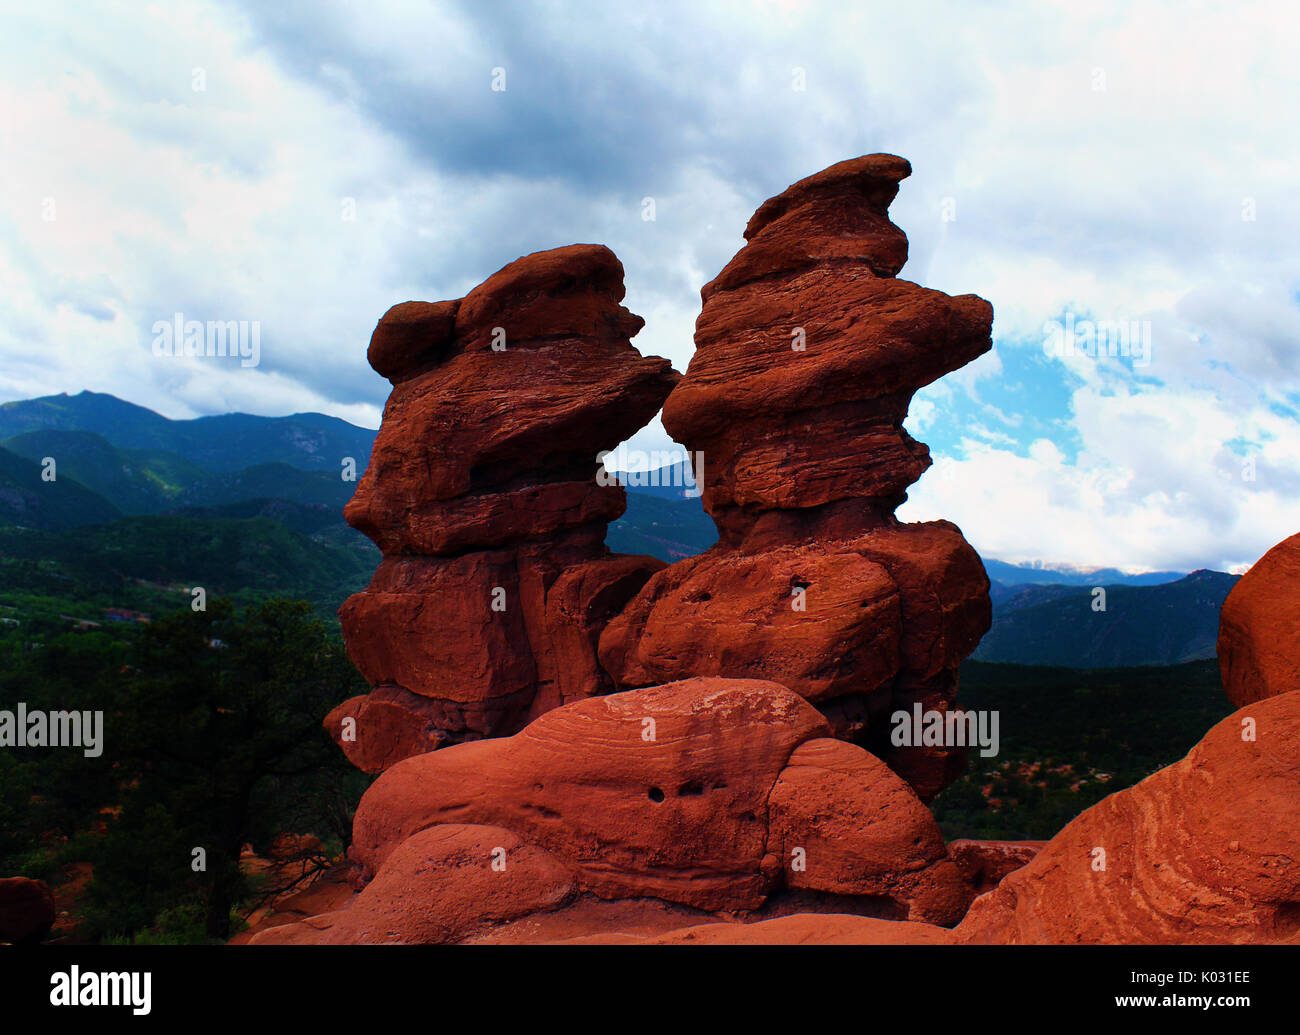 Garden of the Gods is located in Colorado Springs, Colorado, US. It is designated a National Natural Landmark. - Stock Image